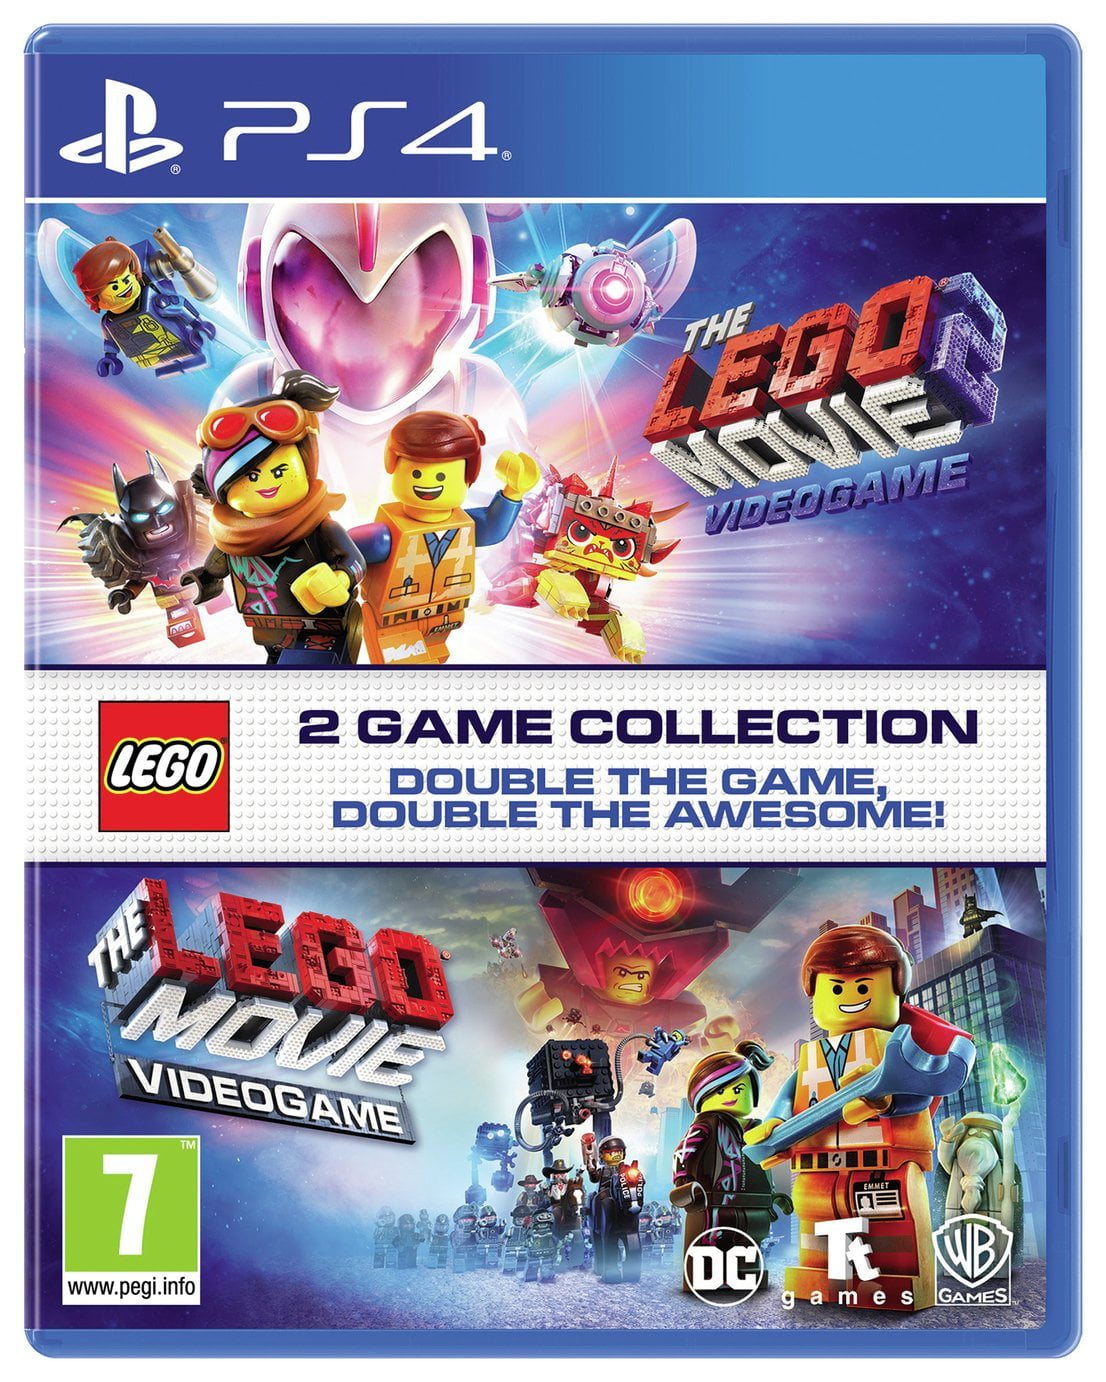 The LEGO Movie 1 & 2 Double Pack PS4 Game